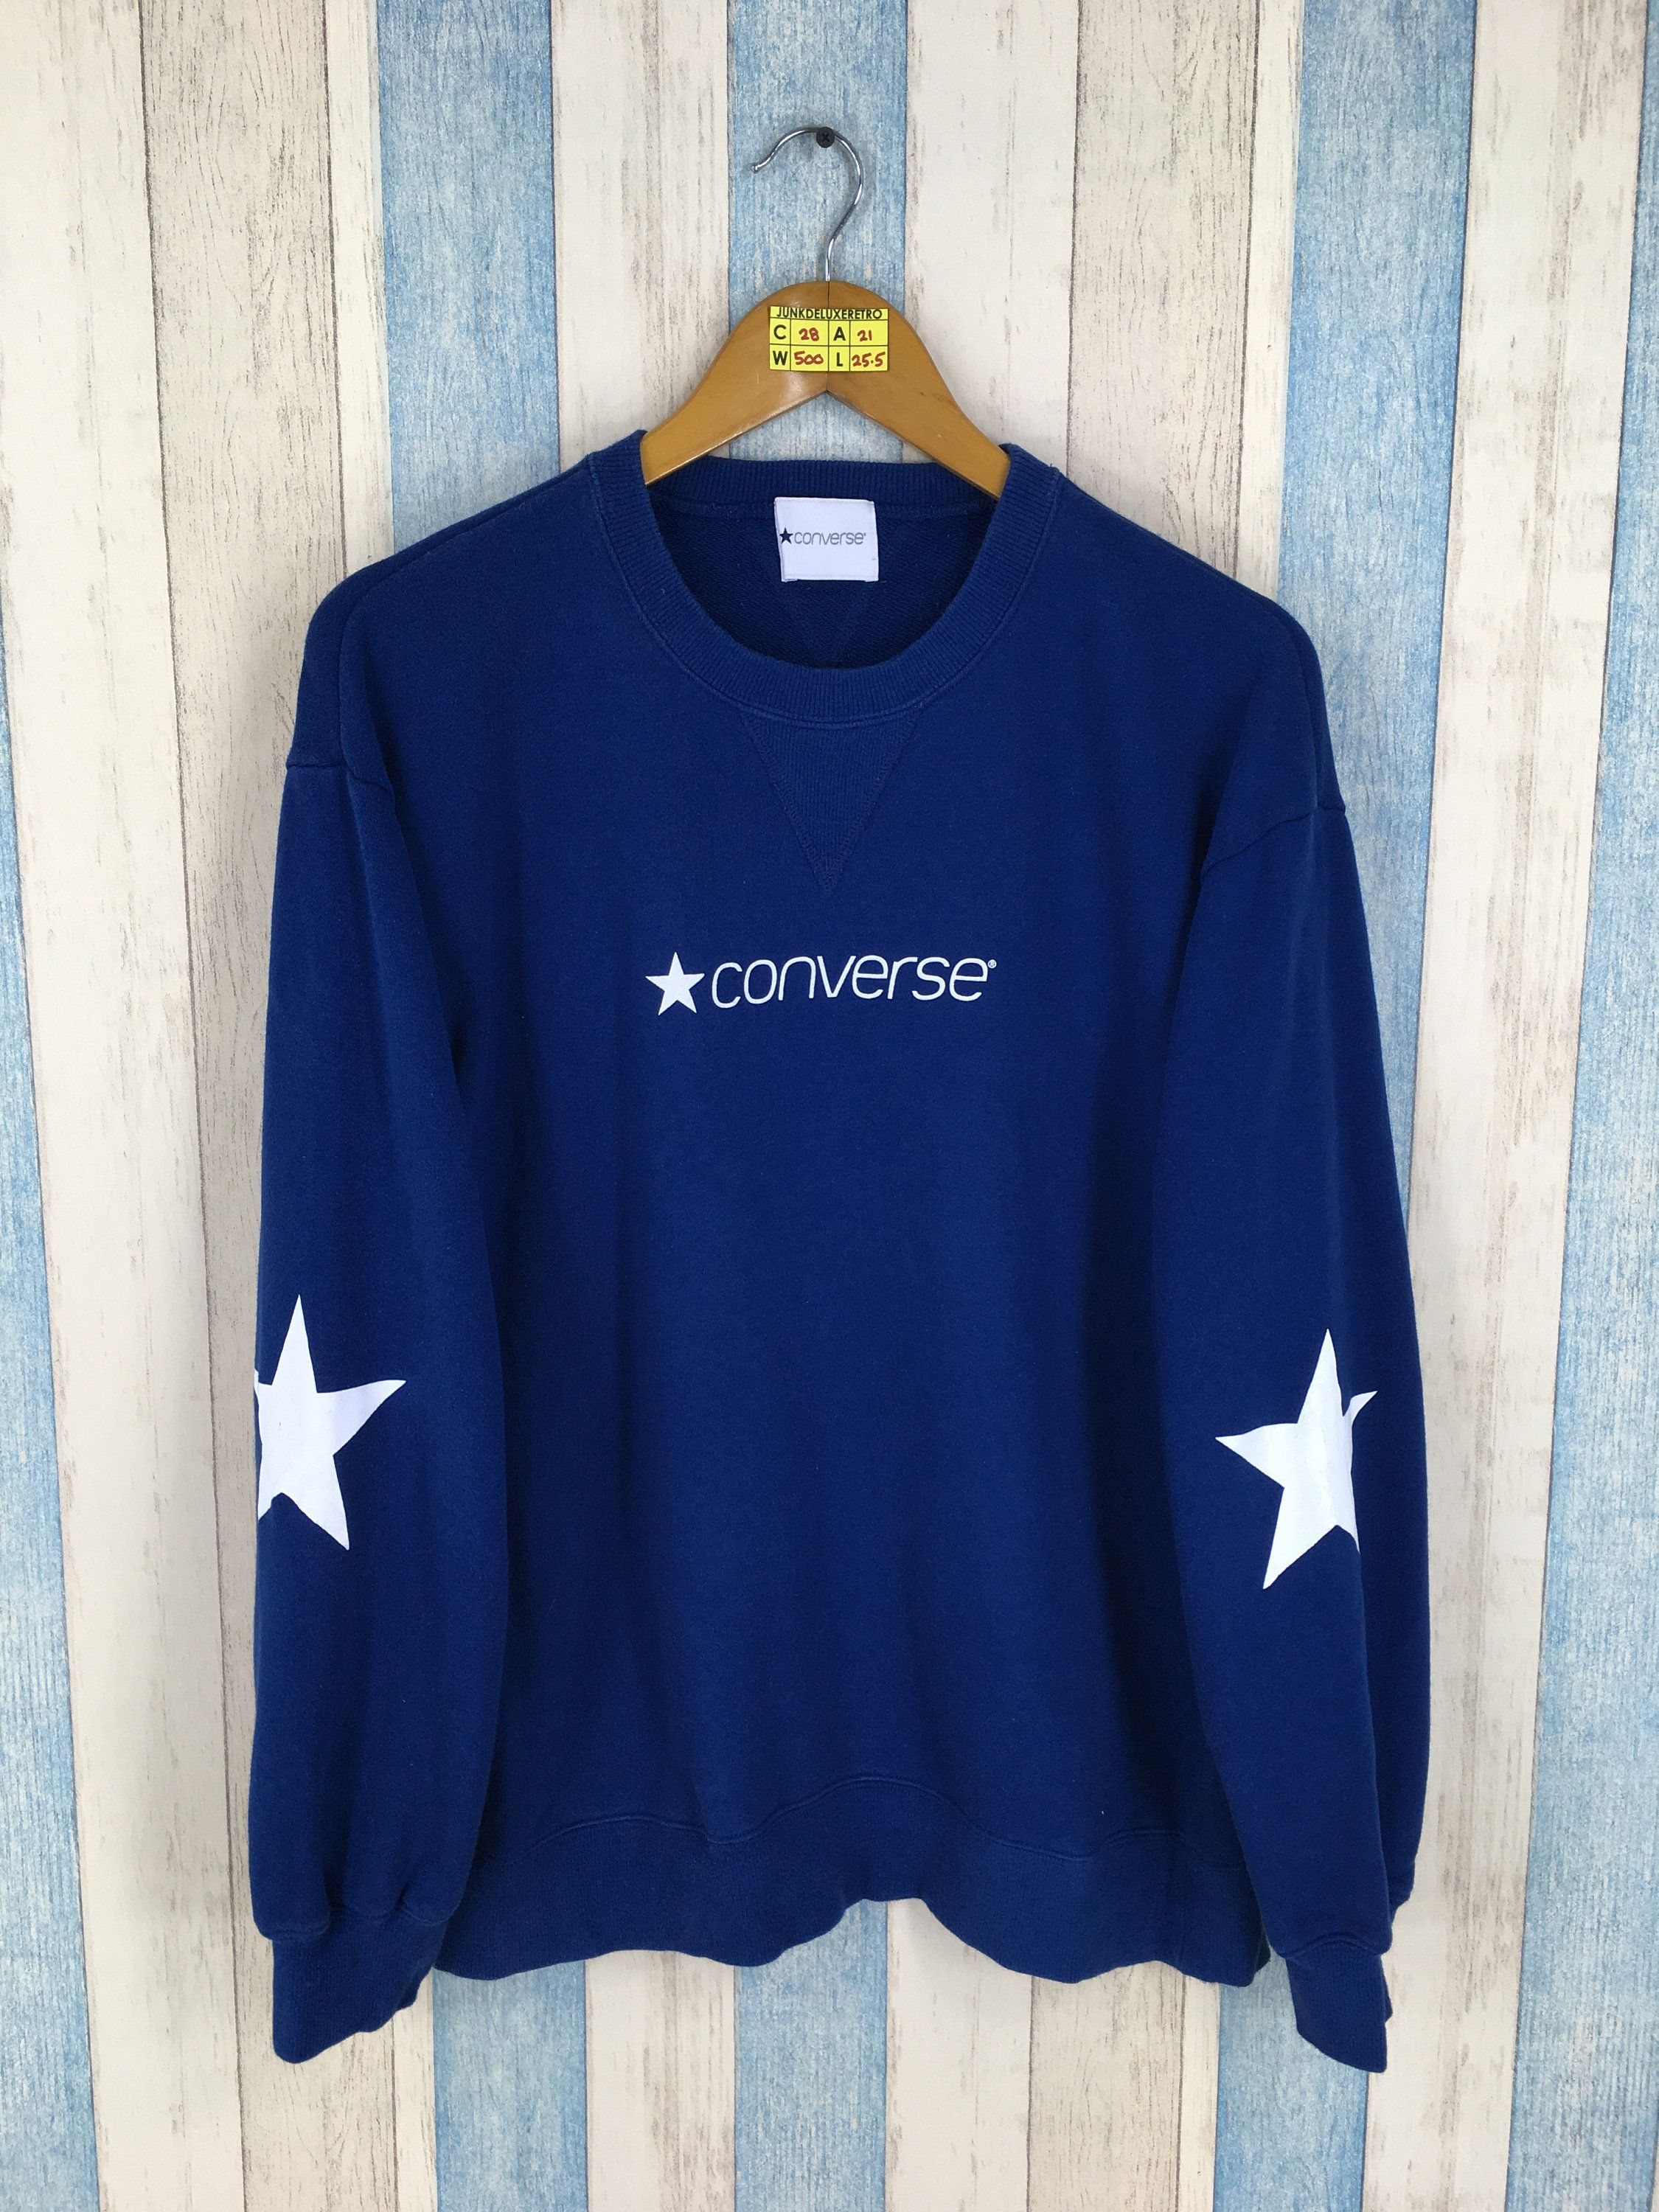 2257f8ee711b CONVERSE All Star Pullover Jumper Unisex Medium Vintage Chuck Taylor Usa 90s  Crewneck Sweater Converse Pullover